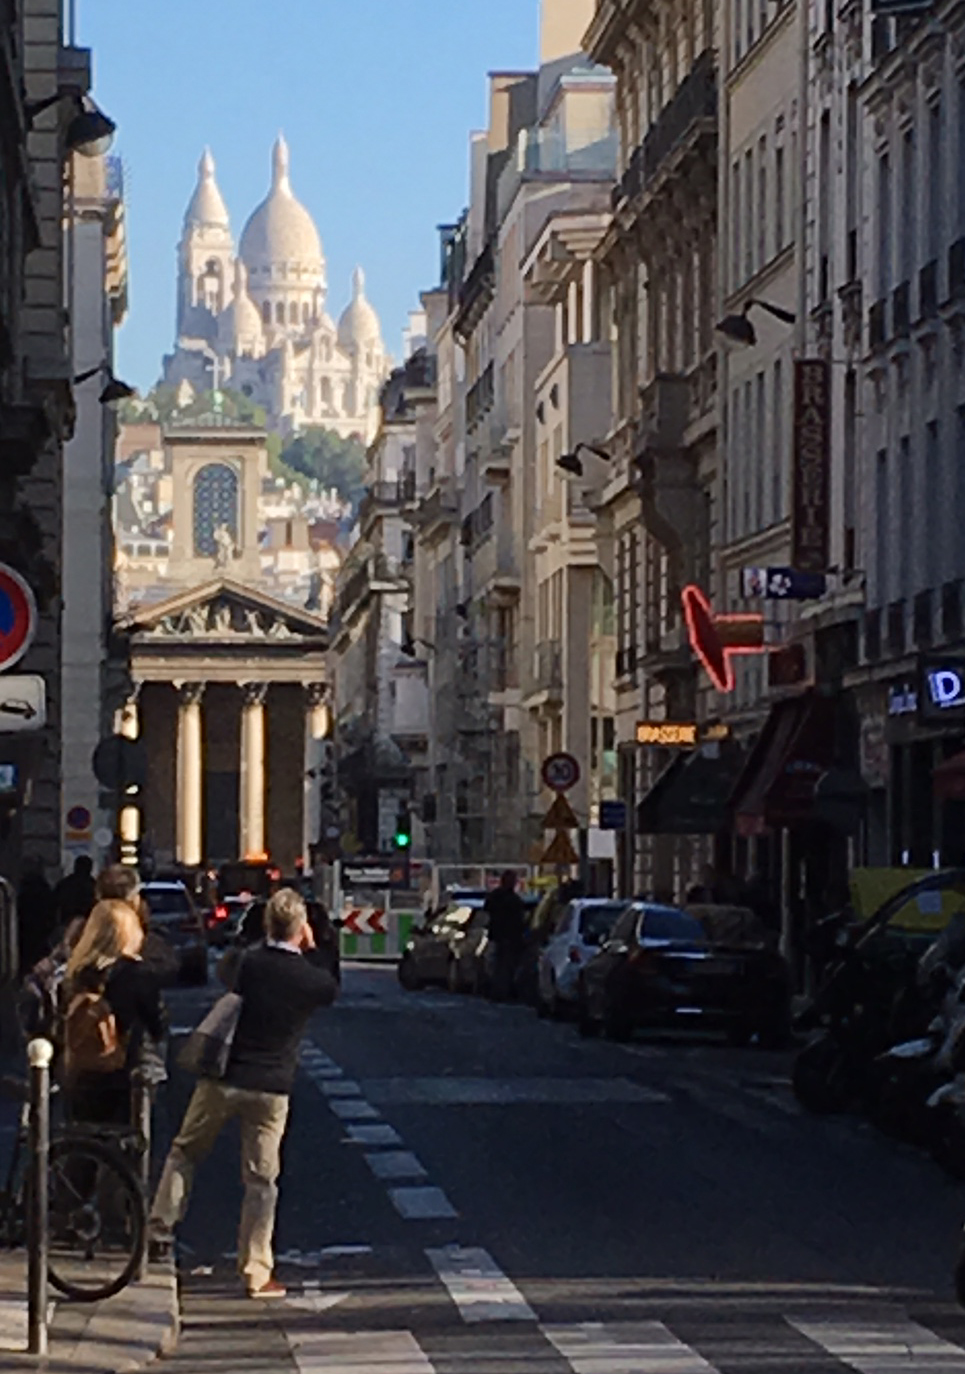 The Sacré-Couer can be seen in between a civilian populated street lined with tall buildings.